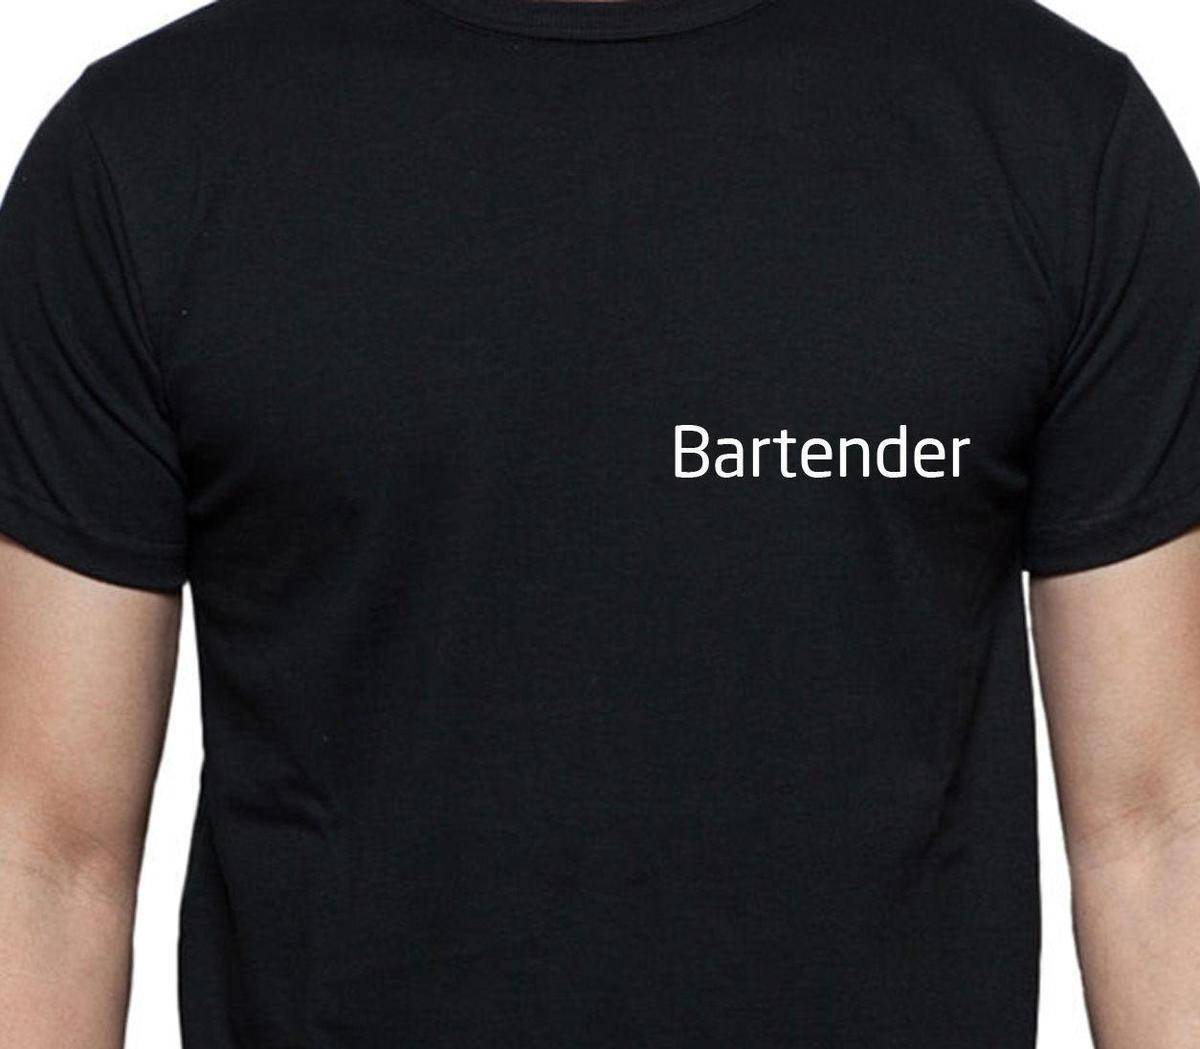 Bartender T Shirt Personalised Tee Job Work Shirt Custom T Shirt Buy